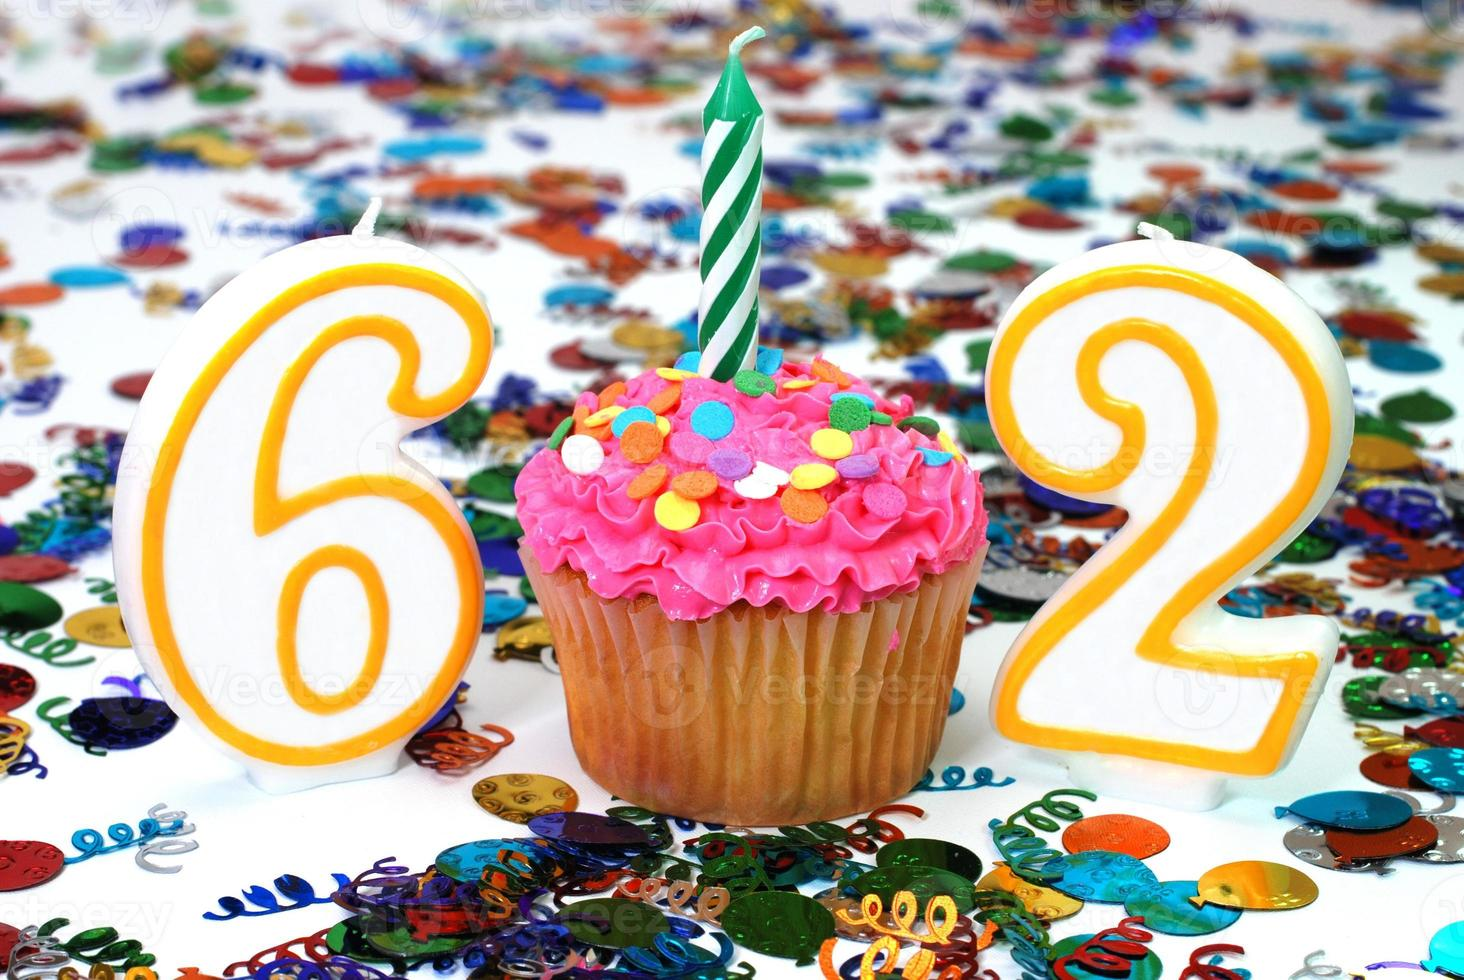 Celebration Cupcake with Candle - Number 62 photo